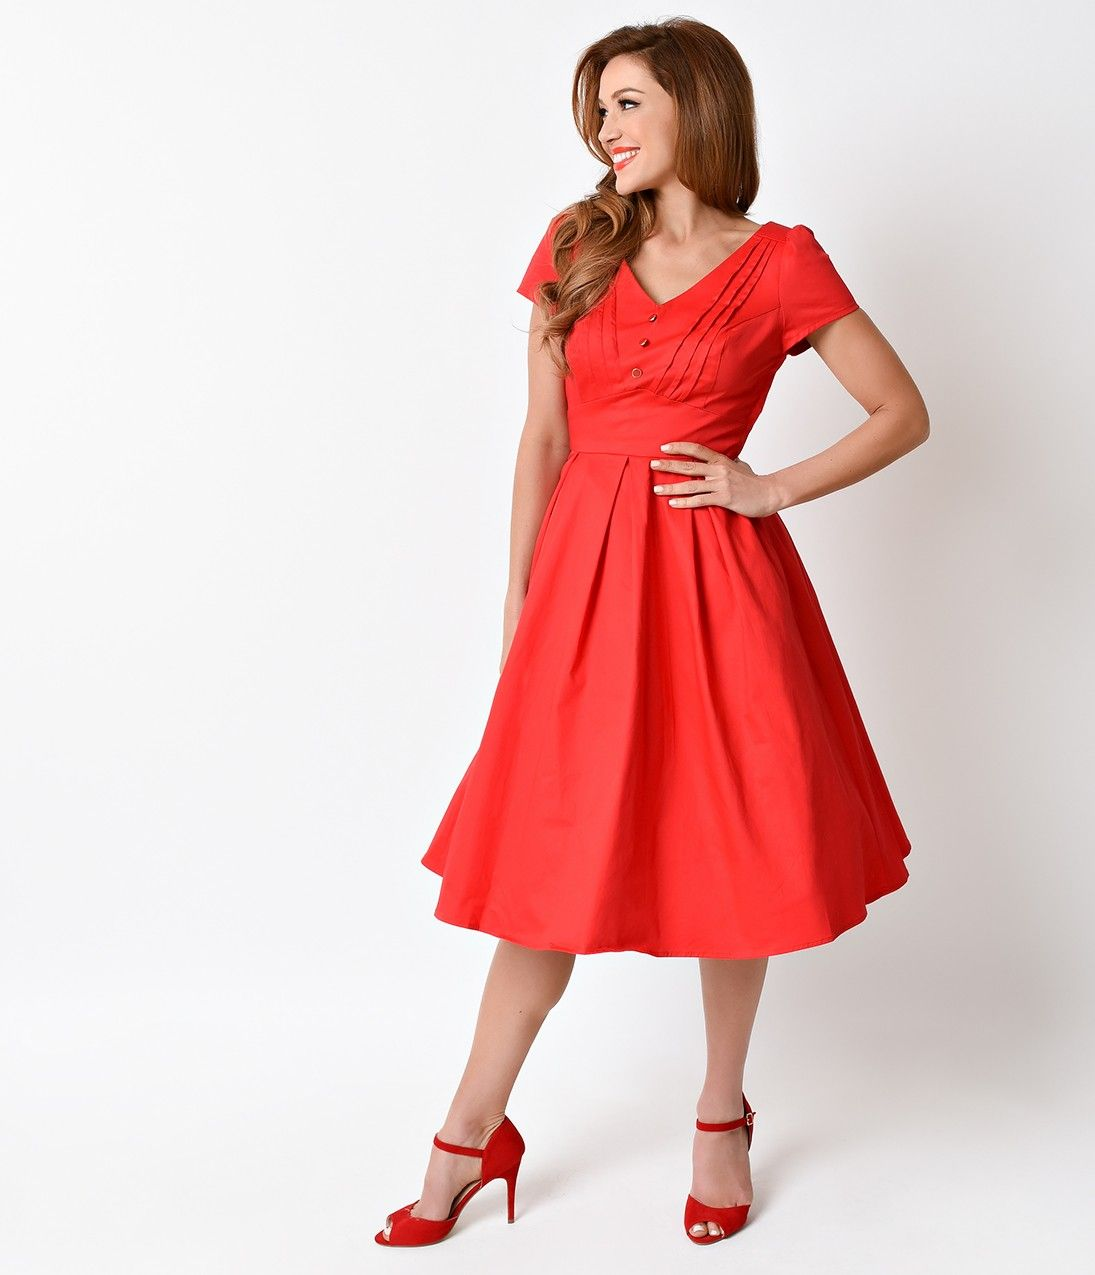 3625a7d25f1 1950s Pin Up Style Red Scarlett Cap Sleeve Stretch Swing Dress ...